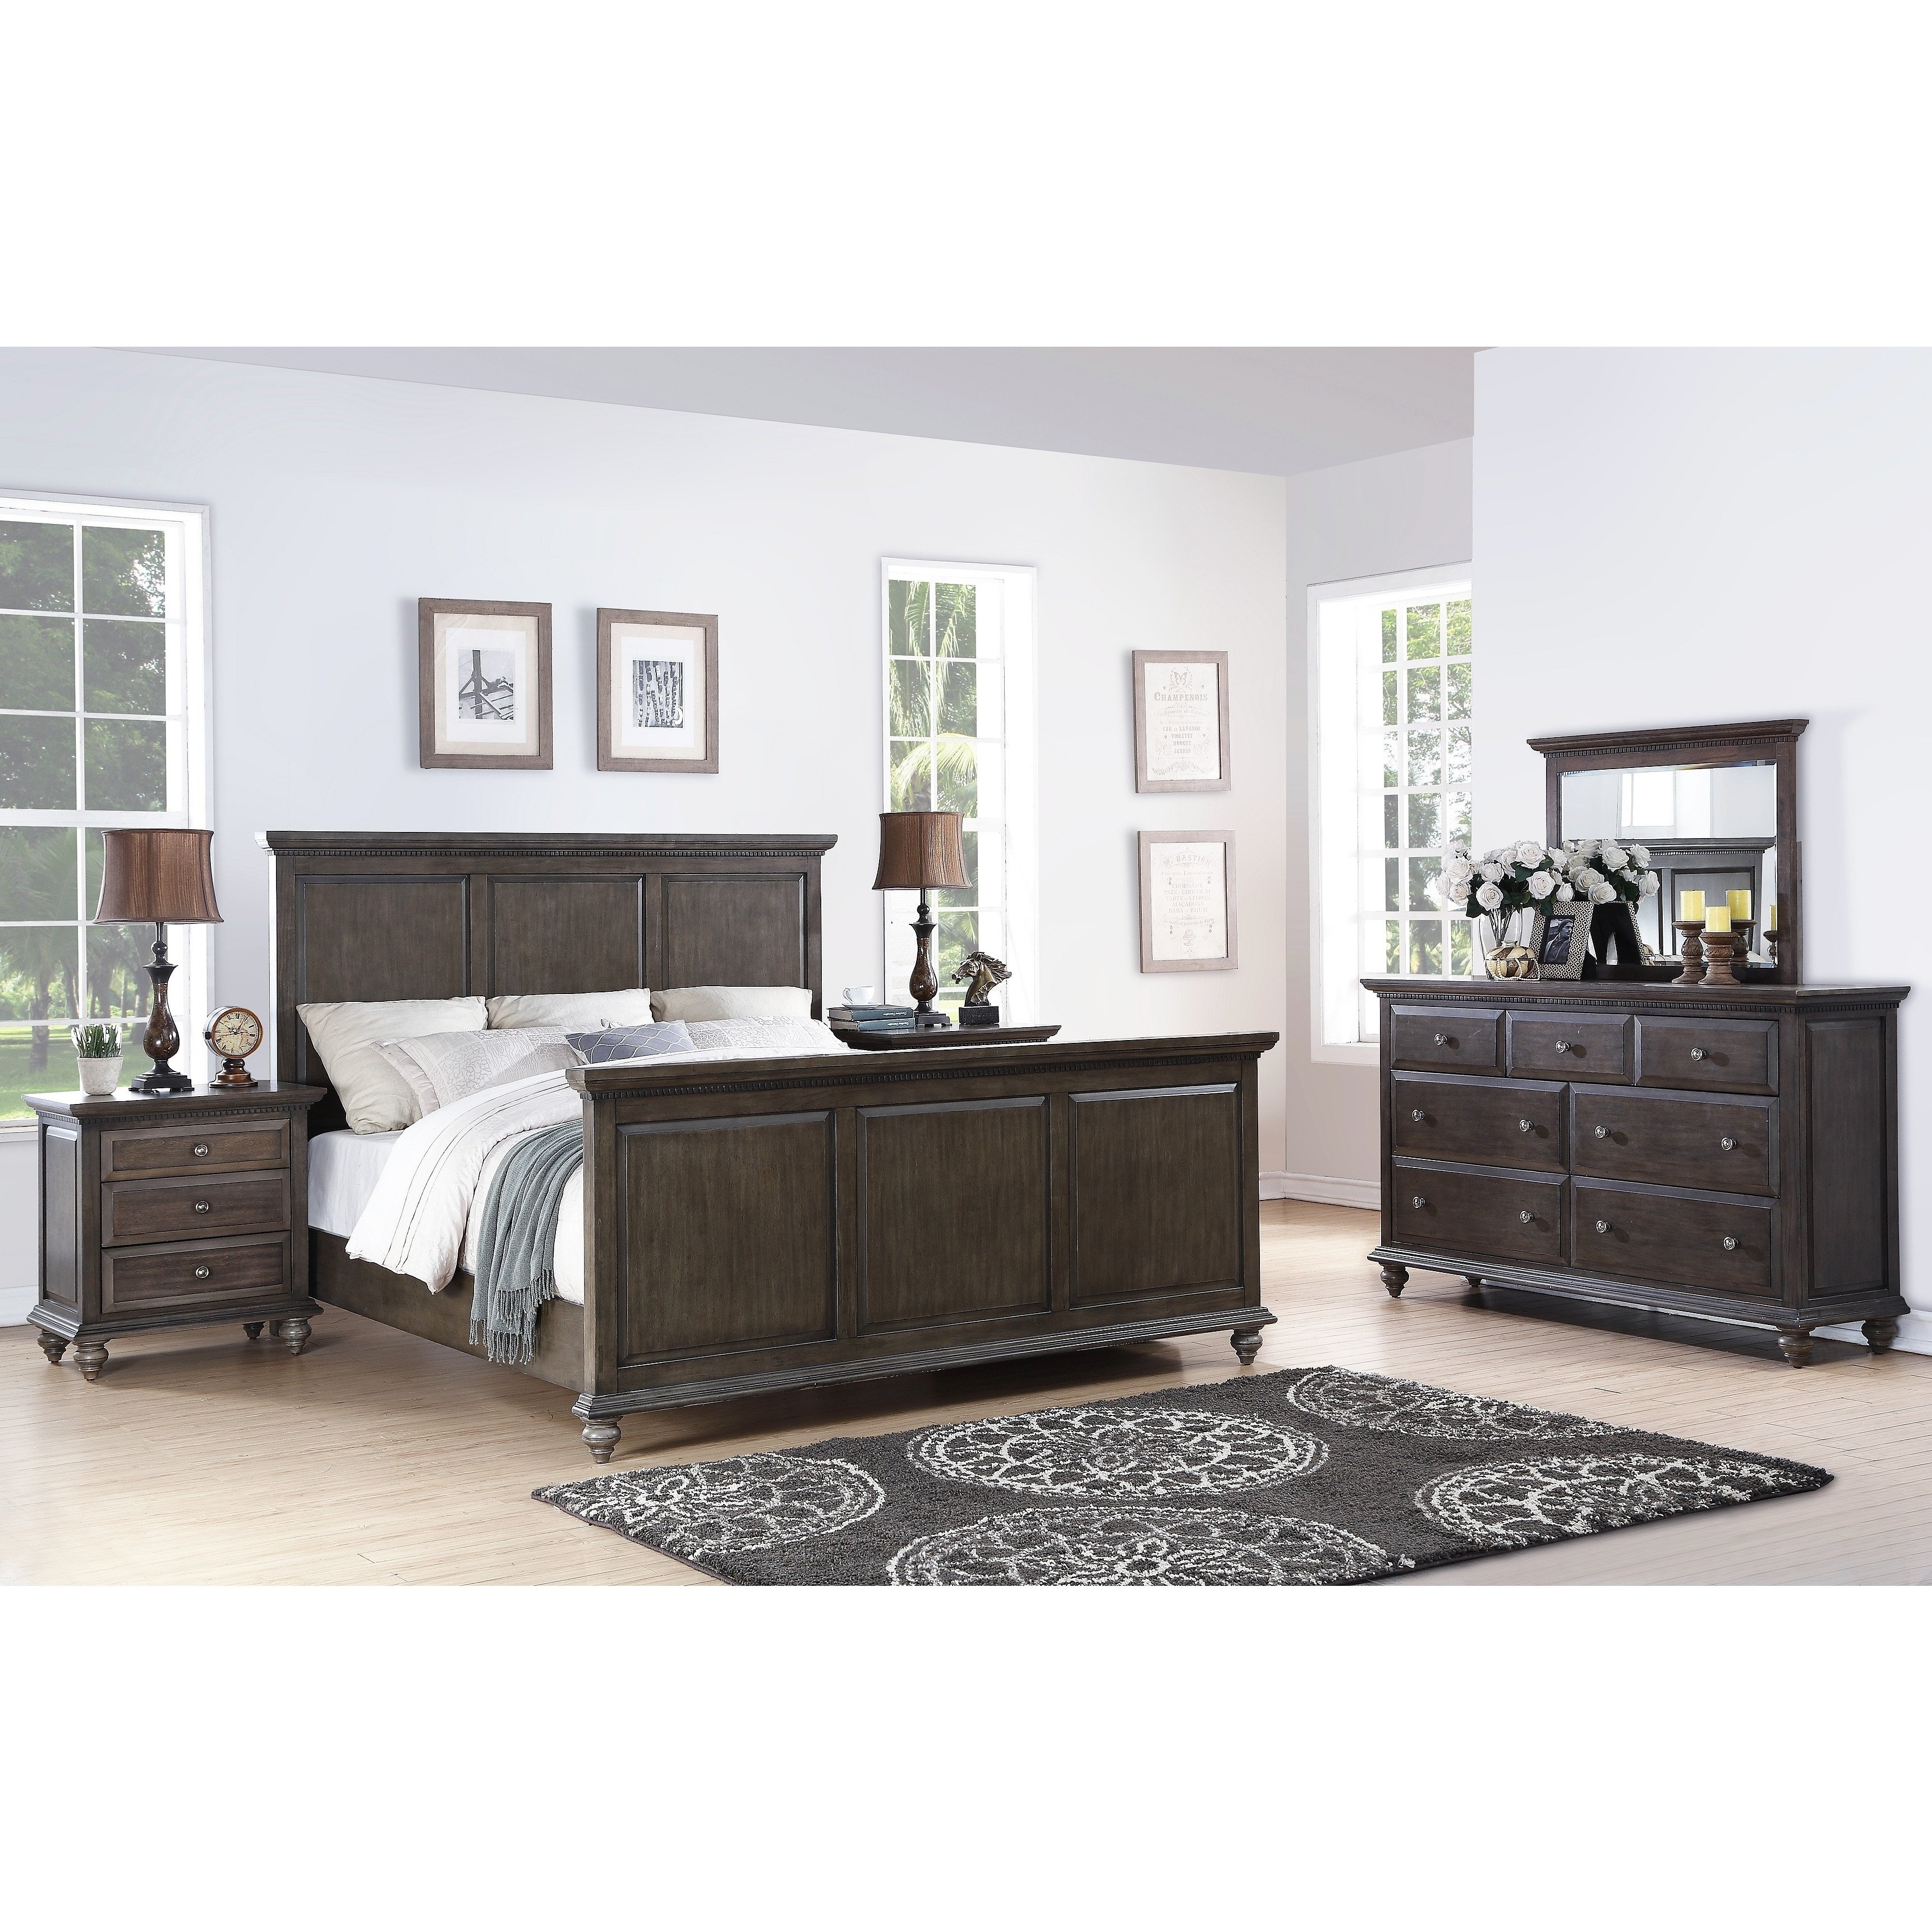 King Size Poster Bedroom Set Unique Abbyson Marseilles City Grey 5 Piece Bedroom Set